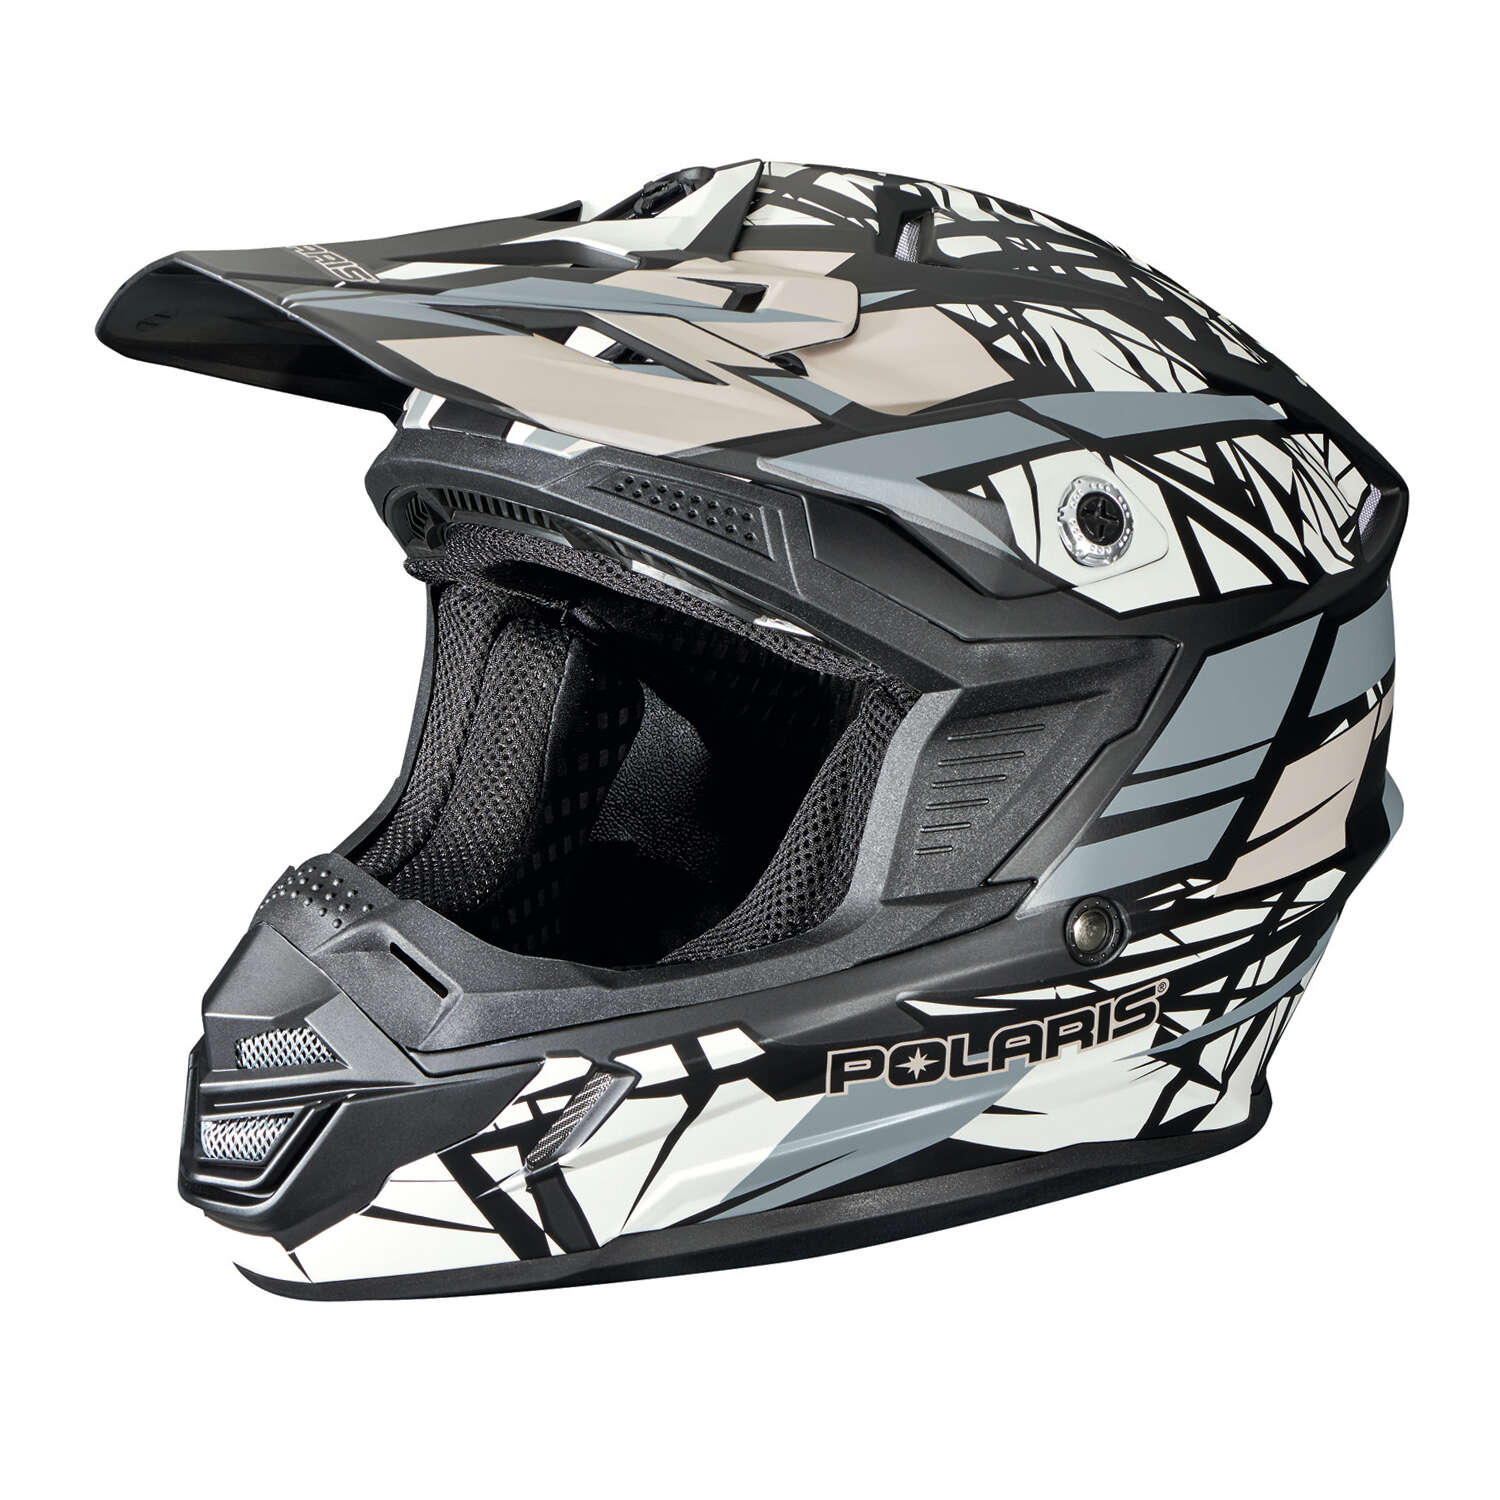 Tenacity Adult Moto Helmet with Removable Liner, Gray